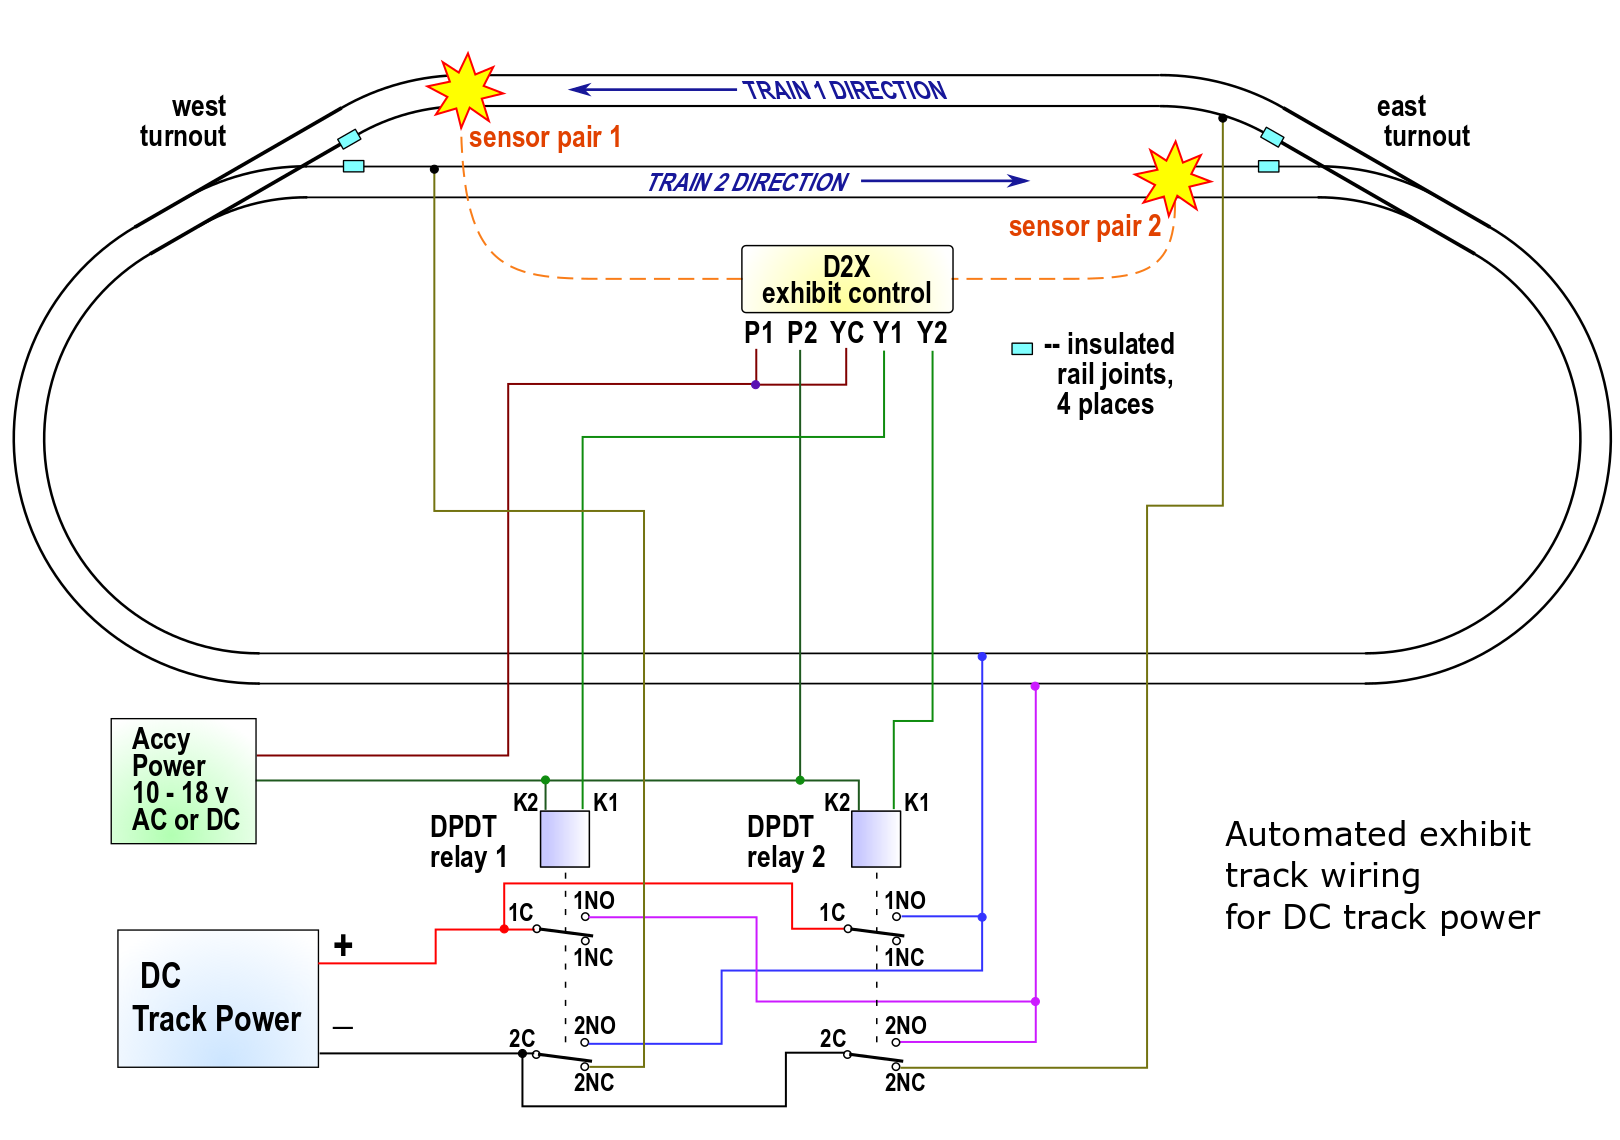 photocell wiring diagram uk wiring diagram and hernes photocell control wiring diagram diagrams and schematics